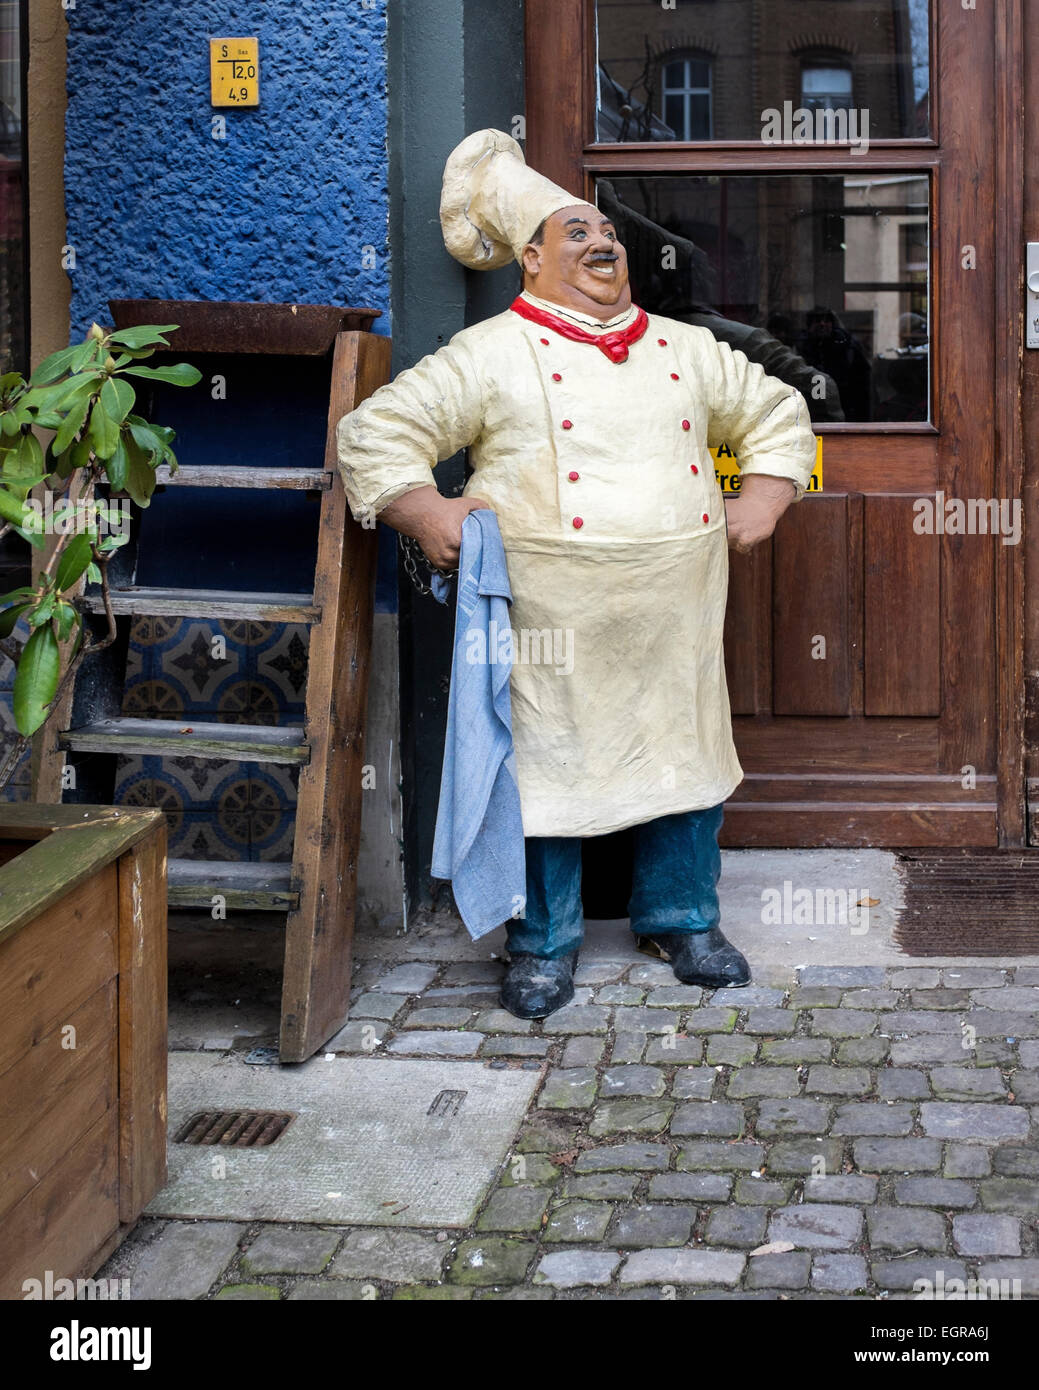 Berlin Restaurant mascot, life-size smiling chef holding dishcloth at entrance, Mitte, Berlin - Stock Image